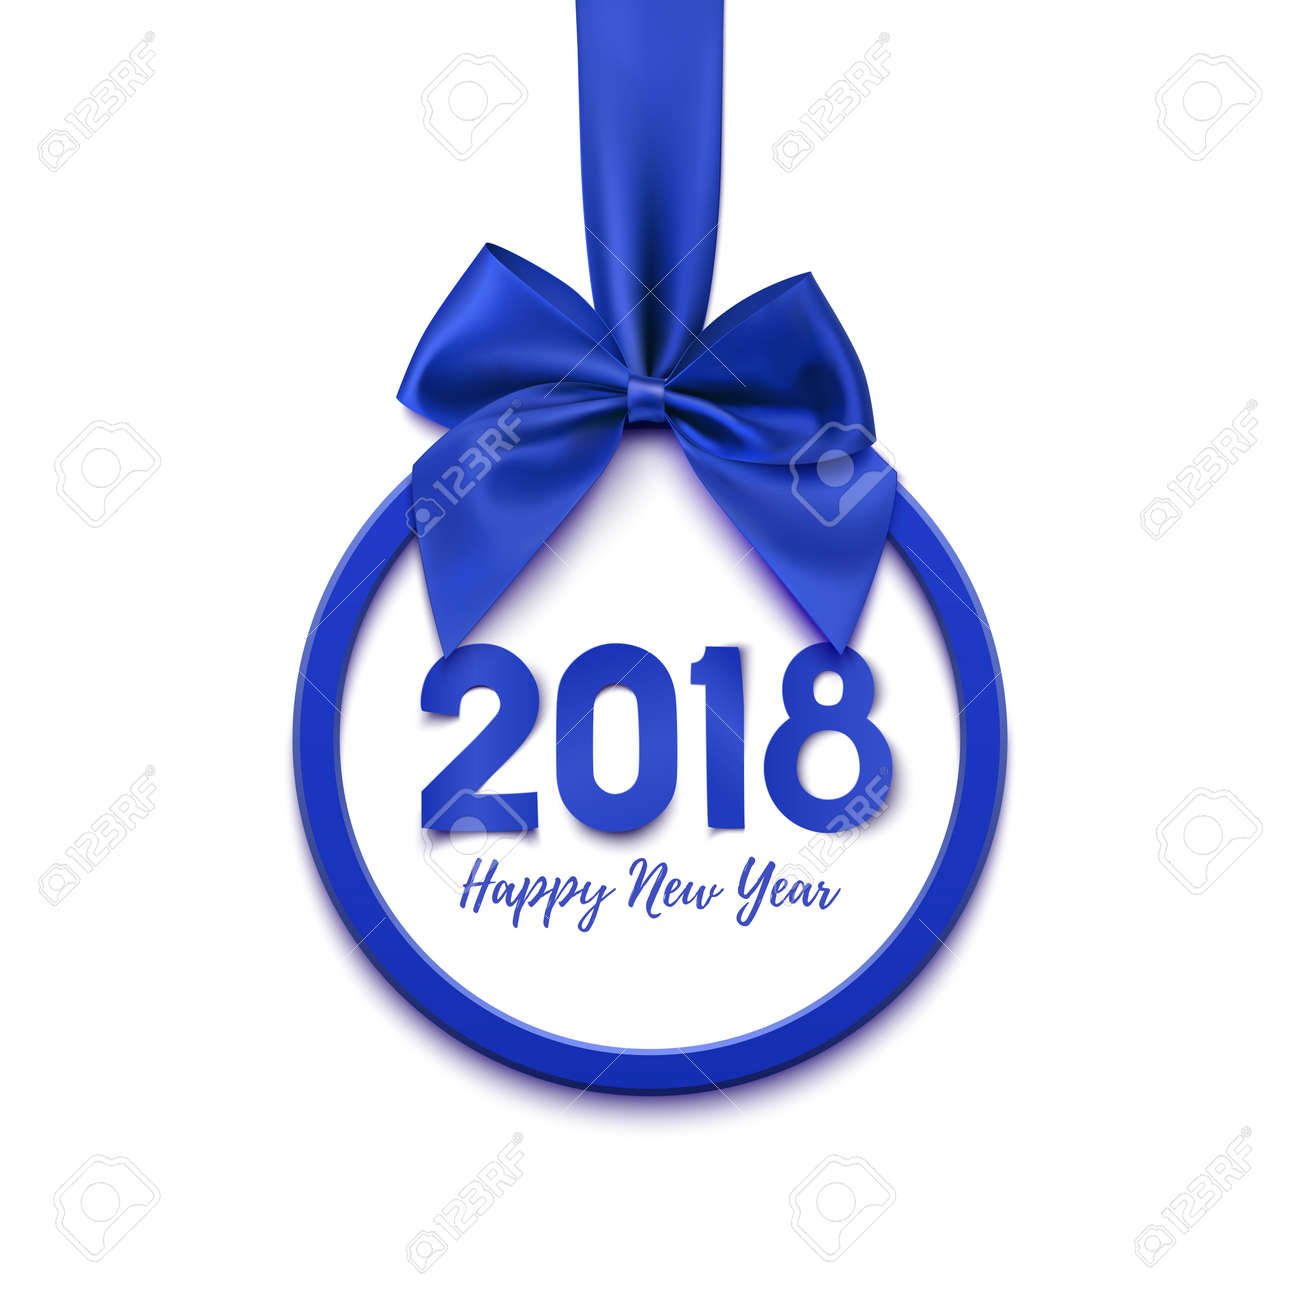 happy new year 2018 banner stock vector 74584336